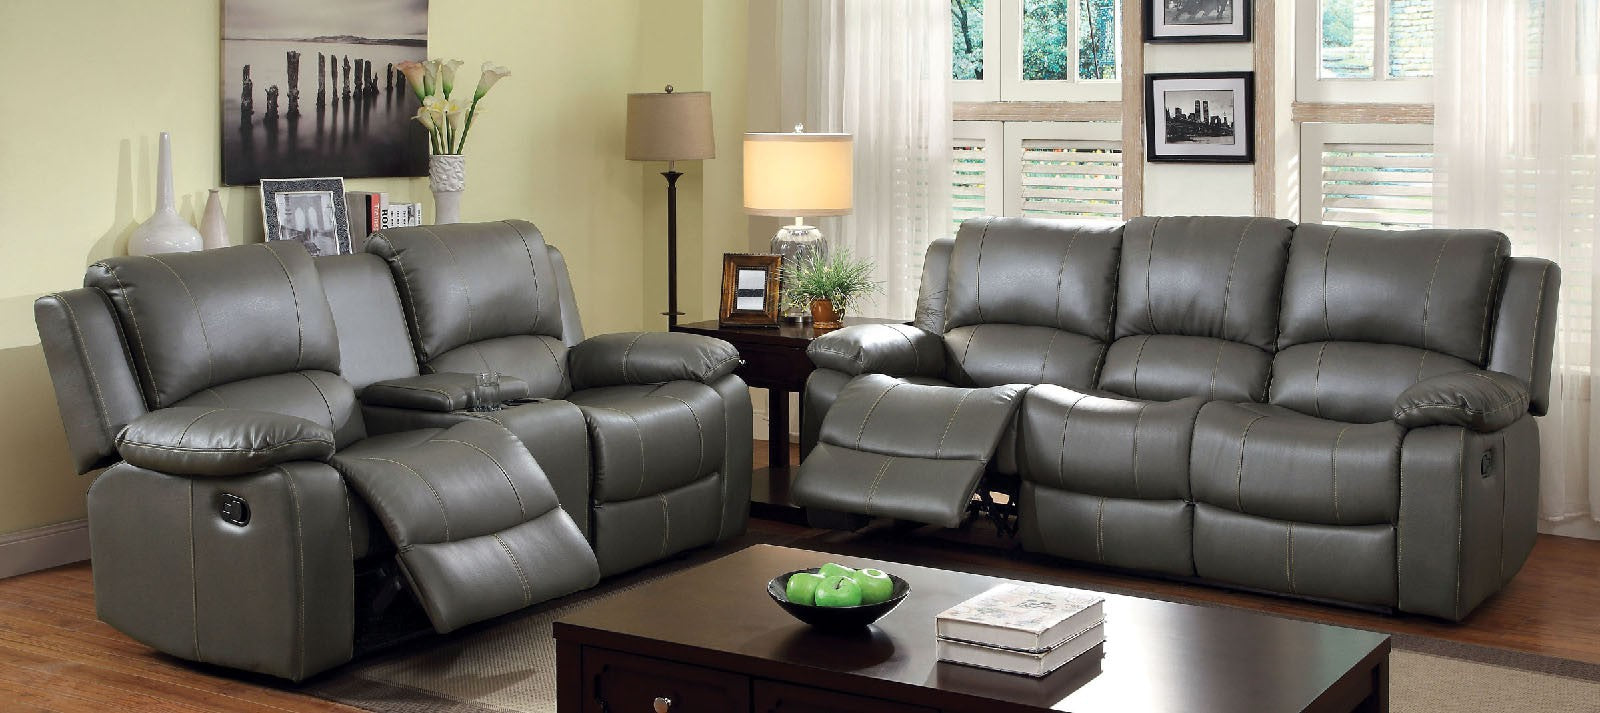 Sarles Bonded Leather Match Gray Transitional Sofa